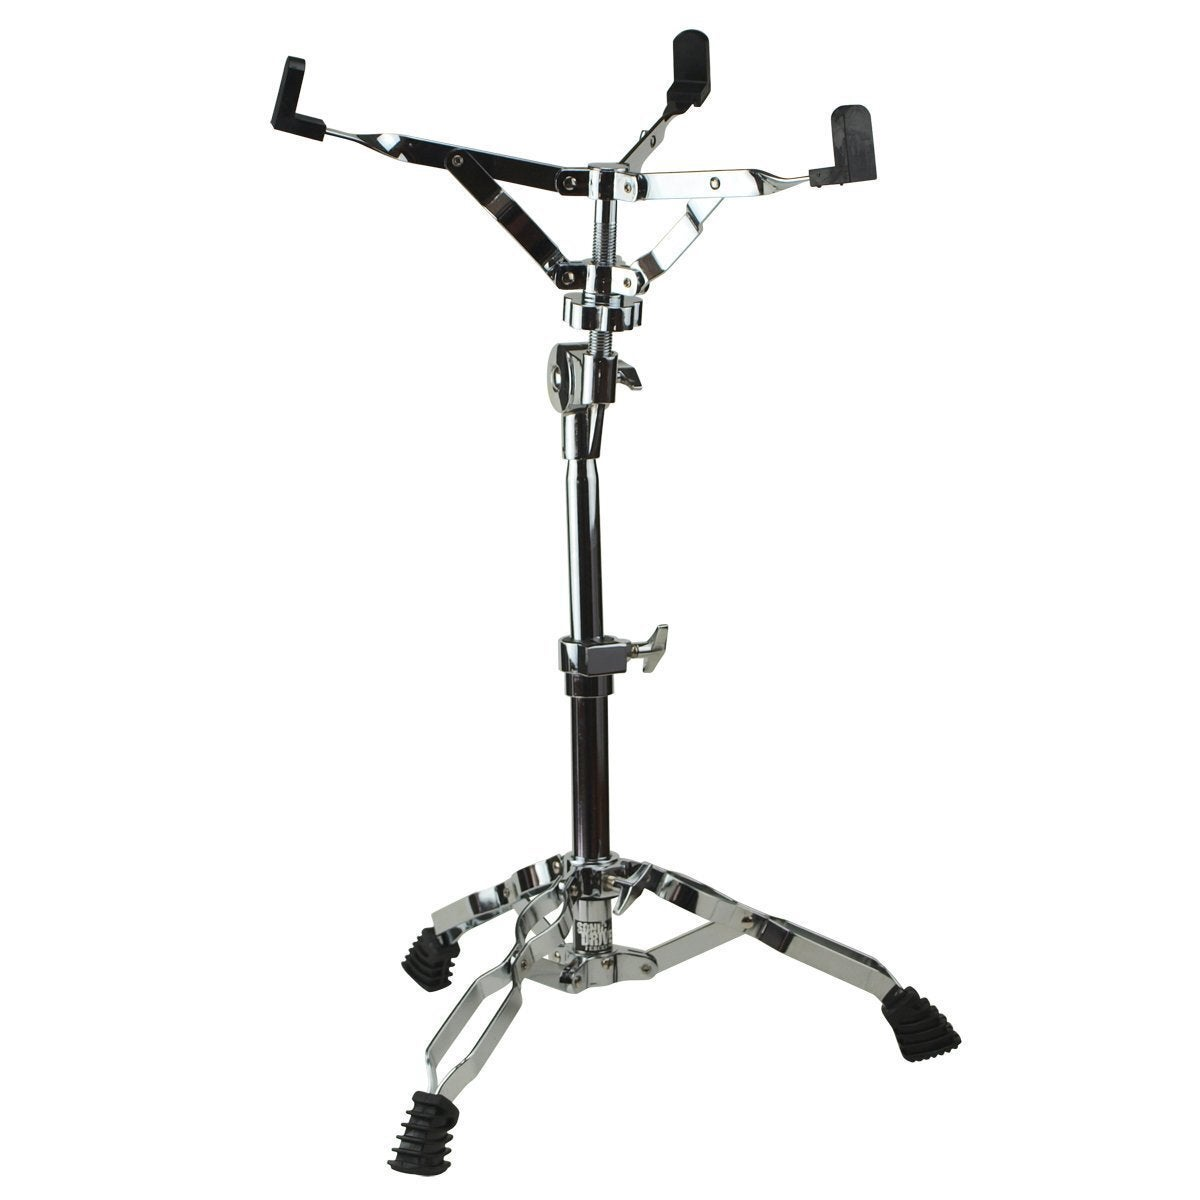 Sonic Drive Deluxe Snare Drum Stand